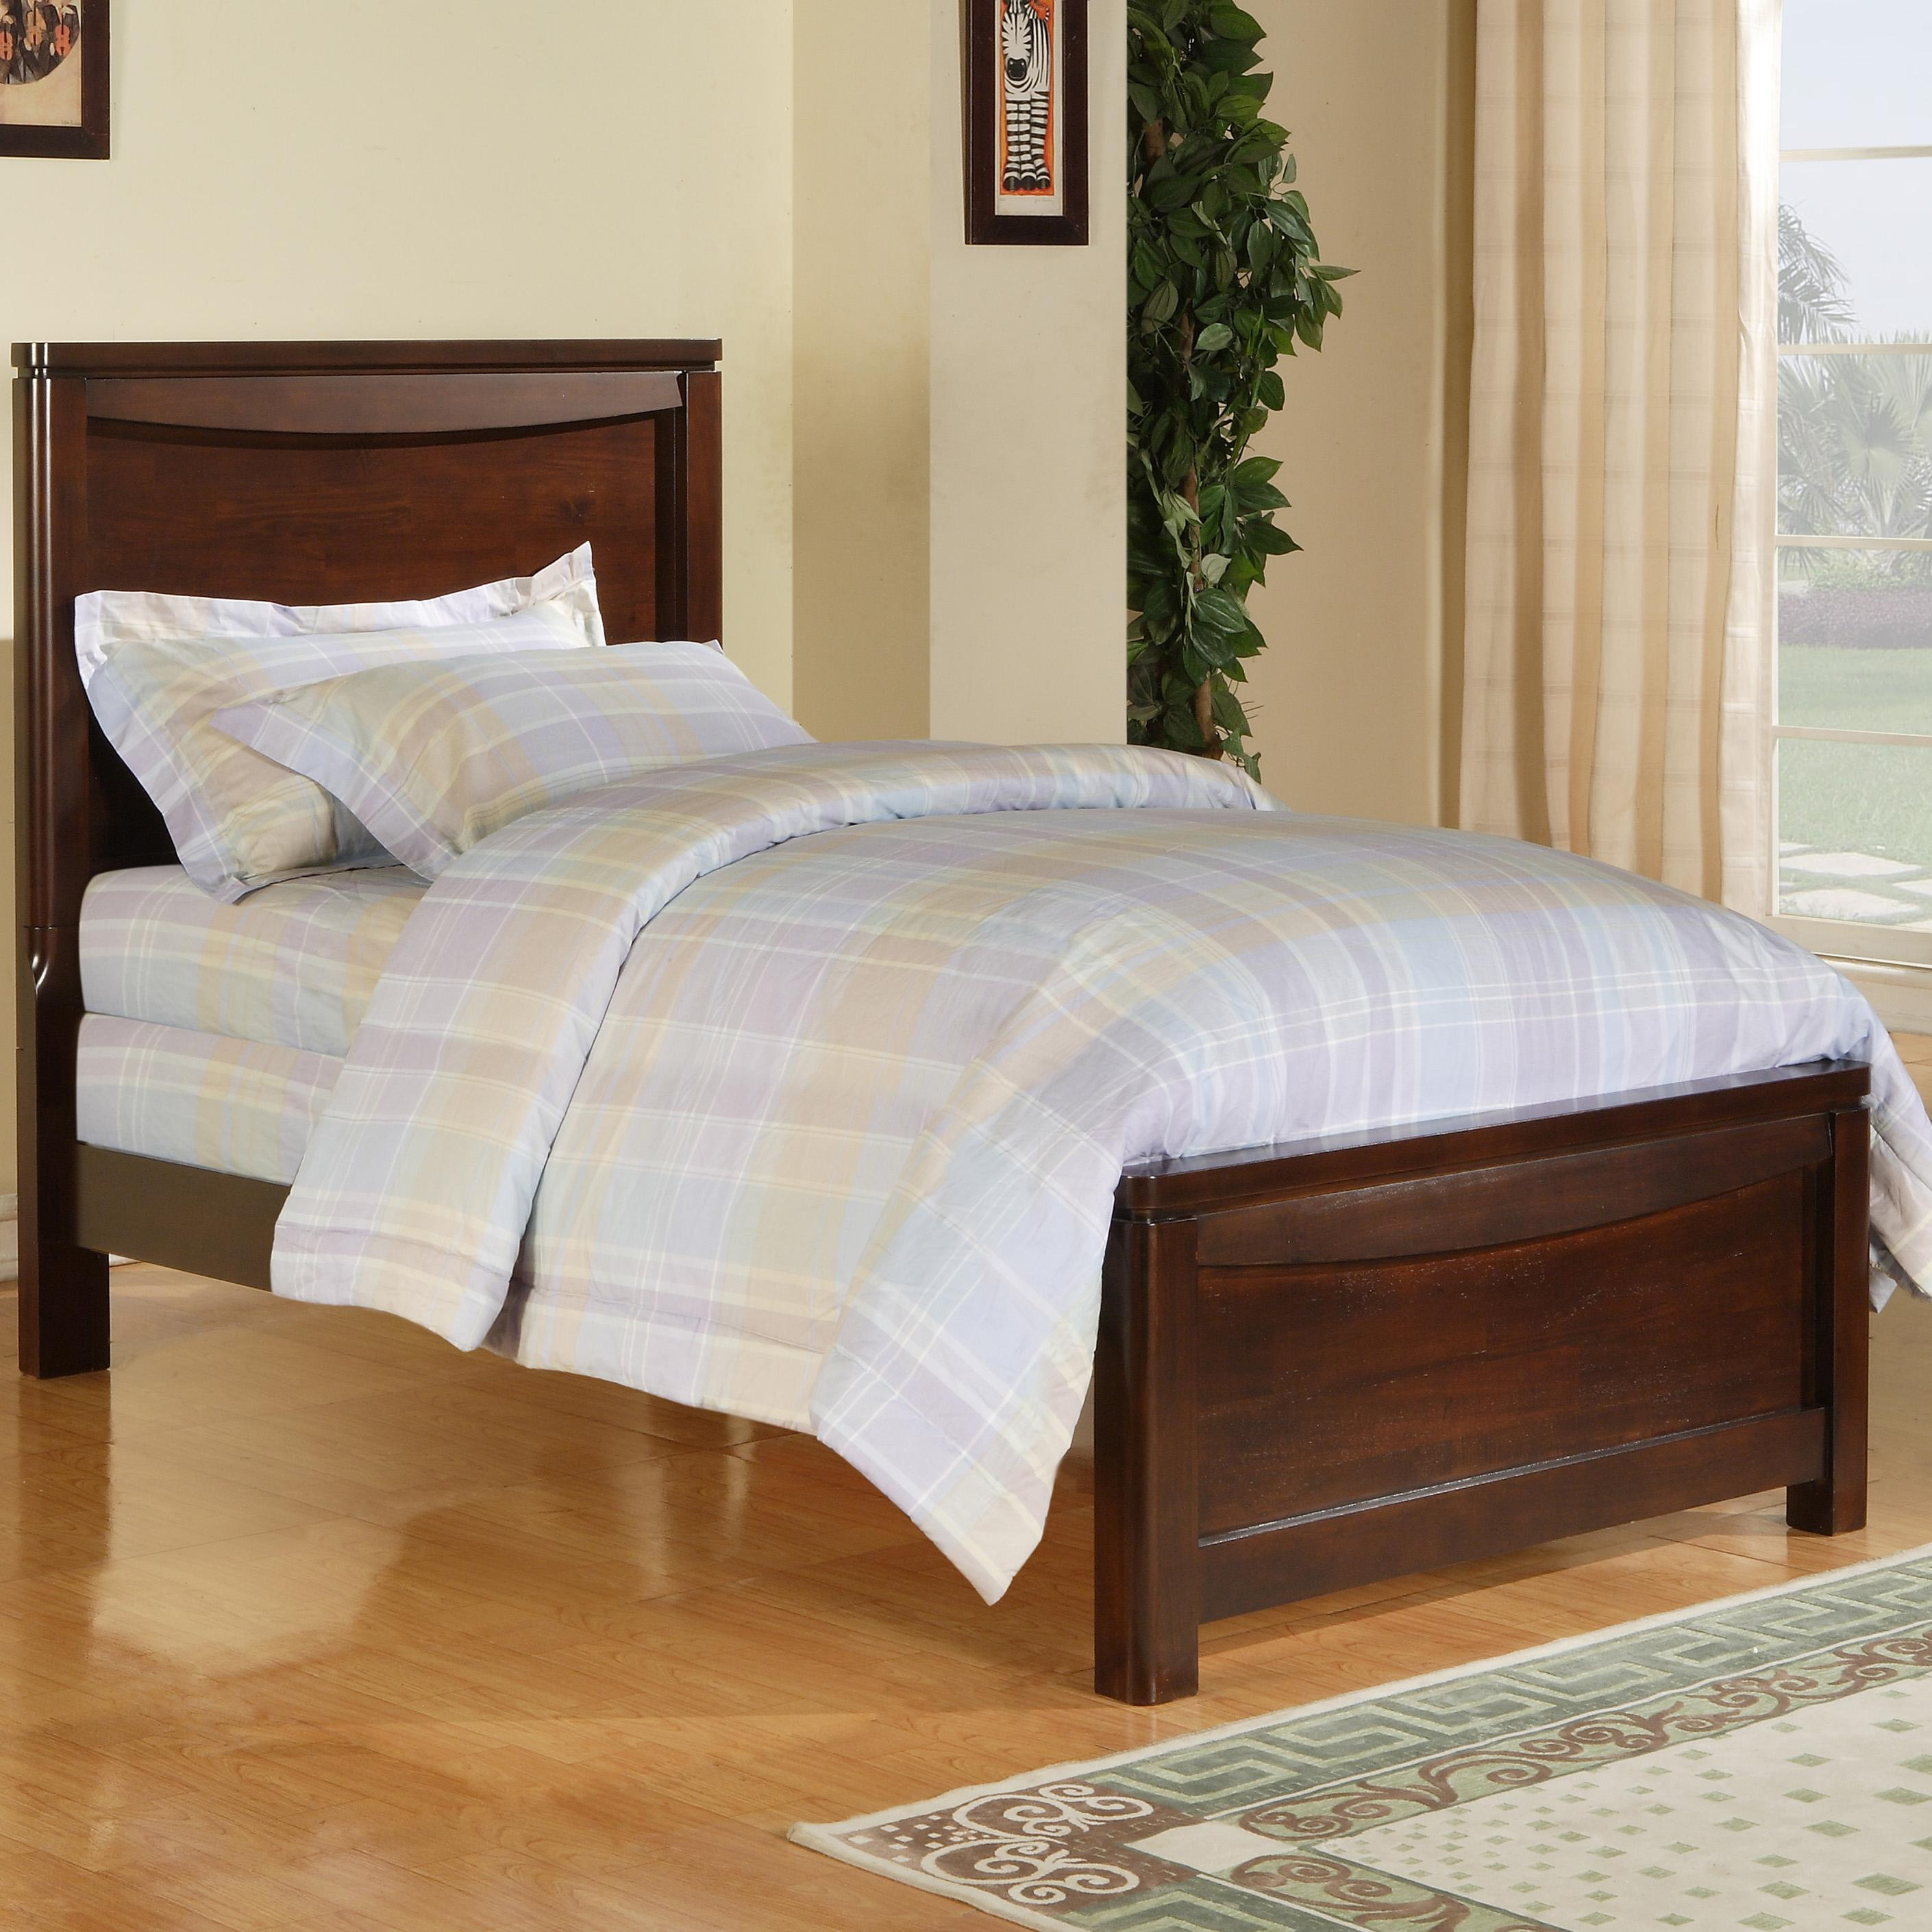 Granada Granada Twin Panel Bed by Holland House at Morris Home